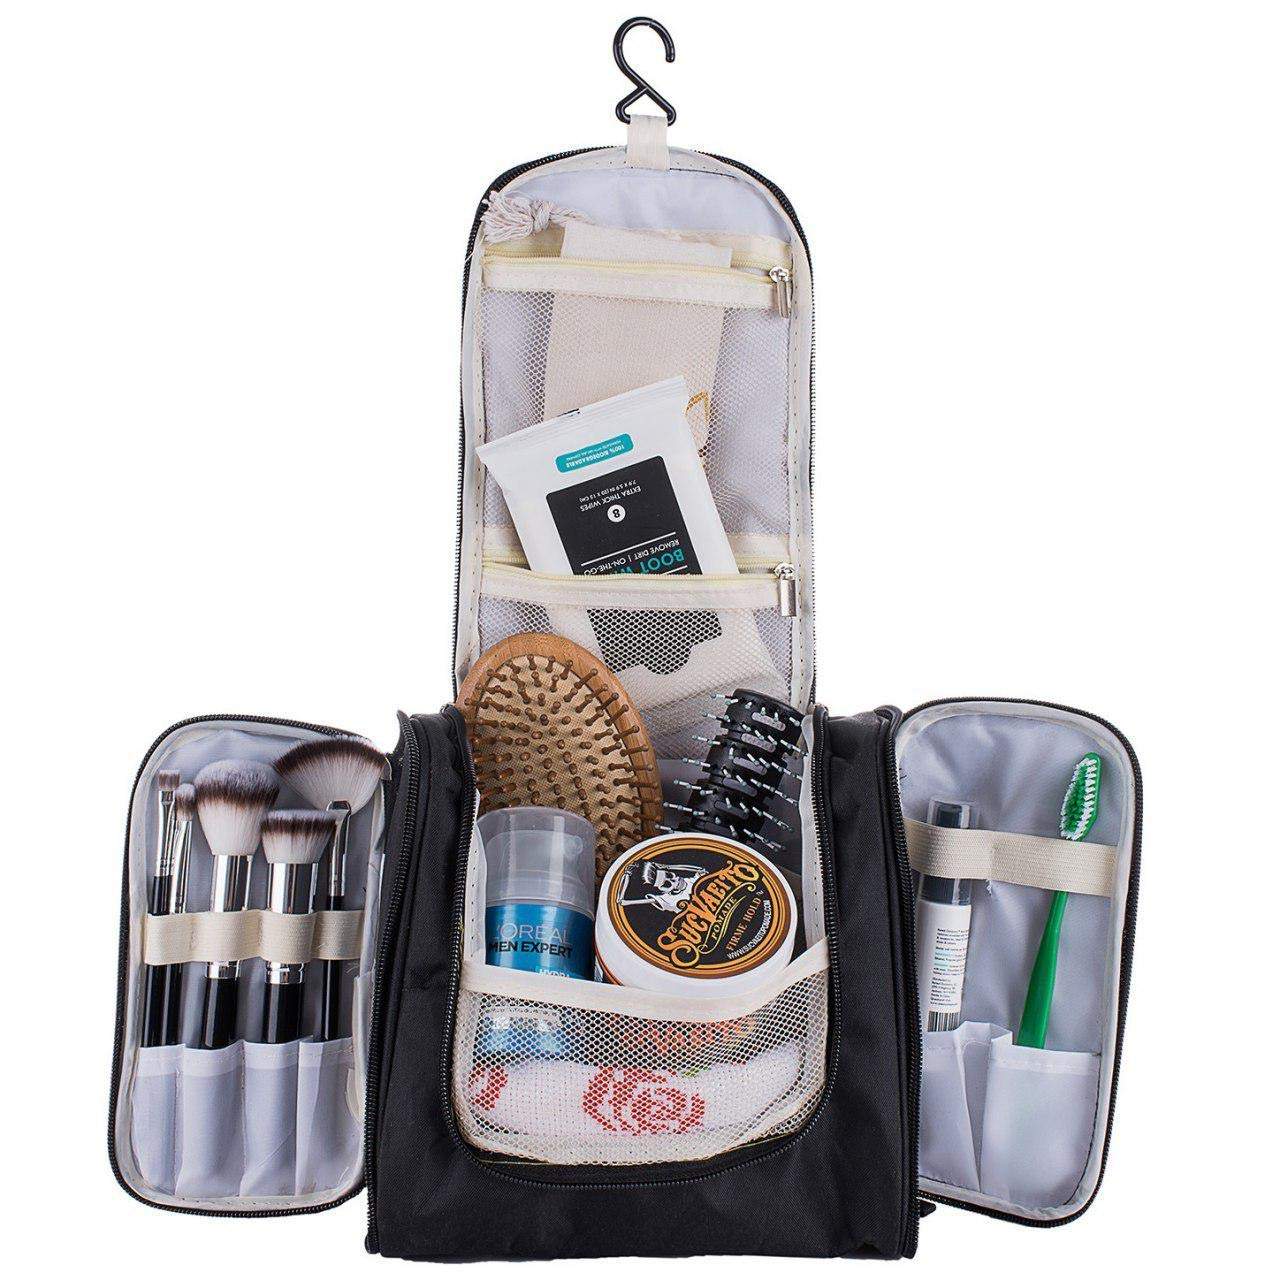 Travel Toiletry Hanging Bag – Store Cosmetic Makeup for Women, or Shaving Kit for Men, This Large Travel Essential Organizer Is Great for Personal Items, Shampoo, Shaving Accessories Body Wash